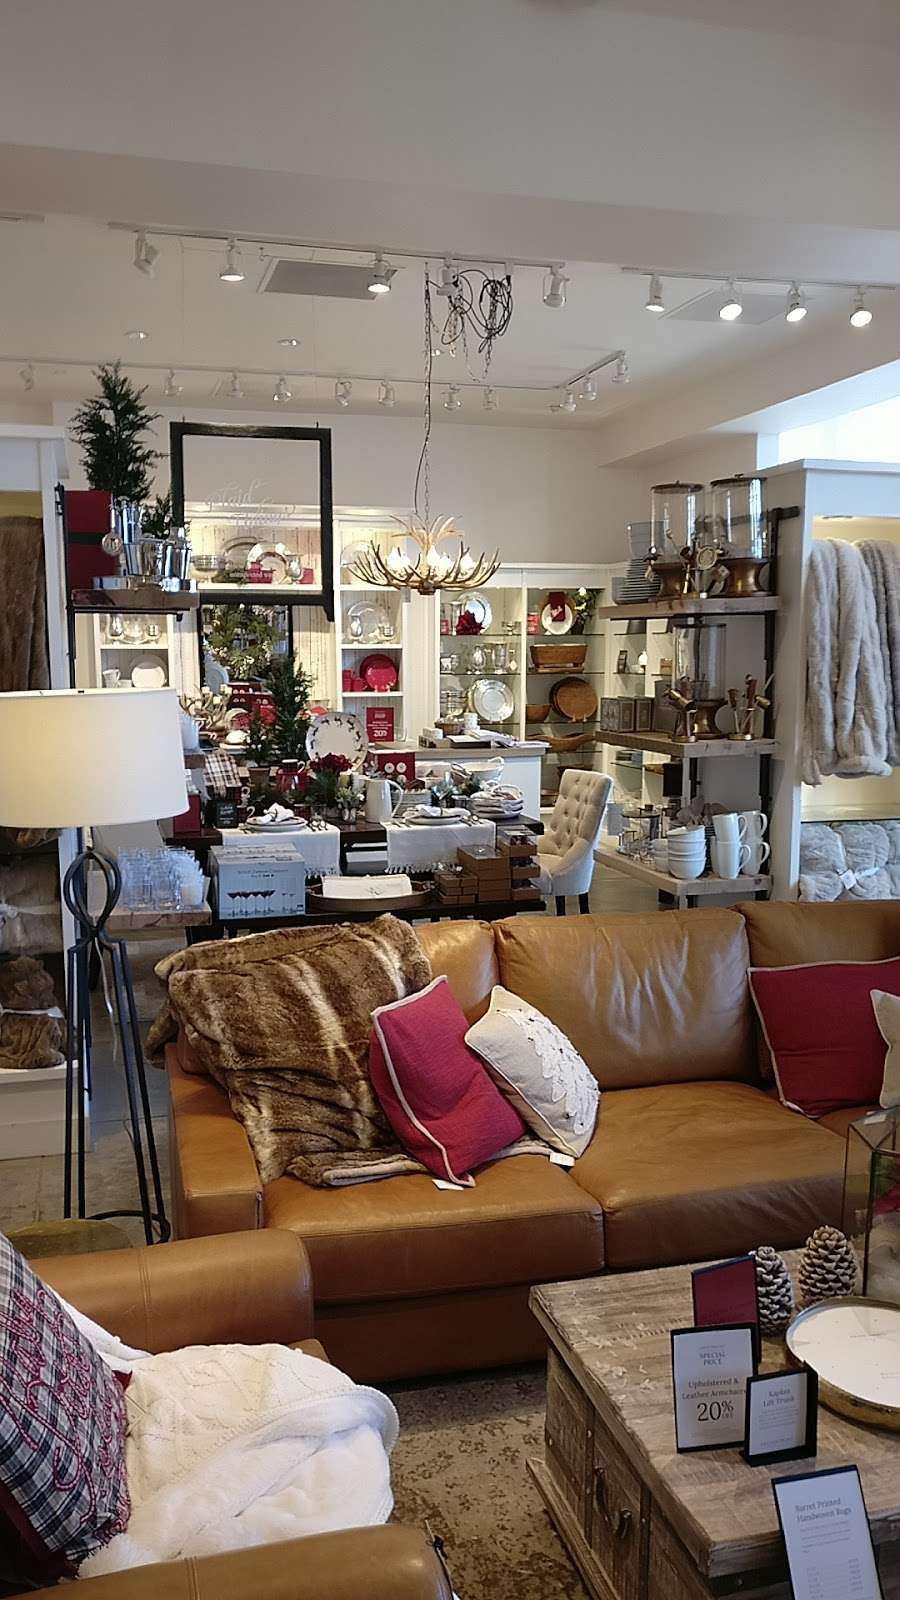 Pottery Barn - furniture store  | Photo 1 of 10 | Address: 7301 S Santa Fe Dr Unit 650, Littleton, CO 80120, USA | Phone: (303) 794-5220